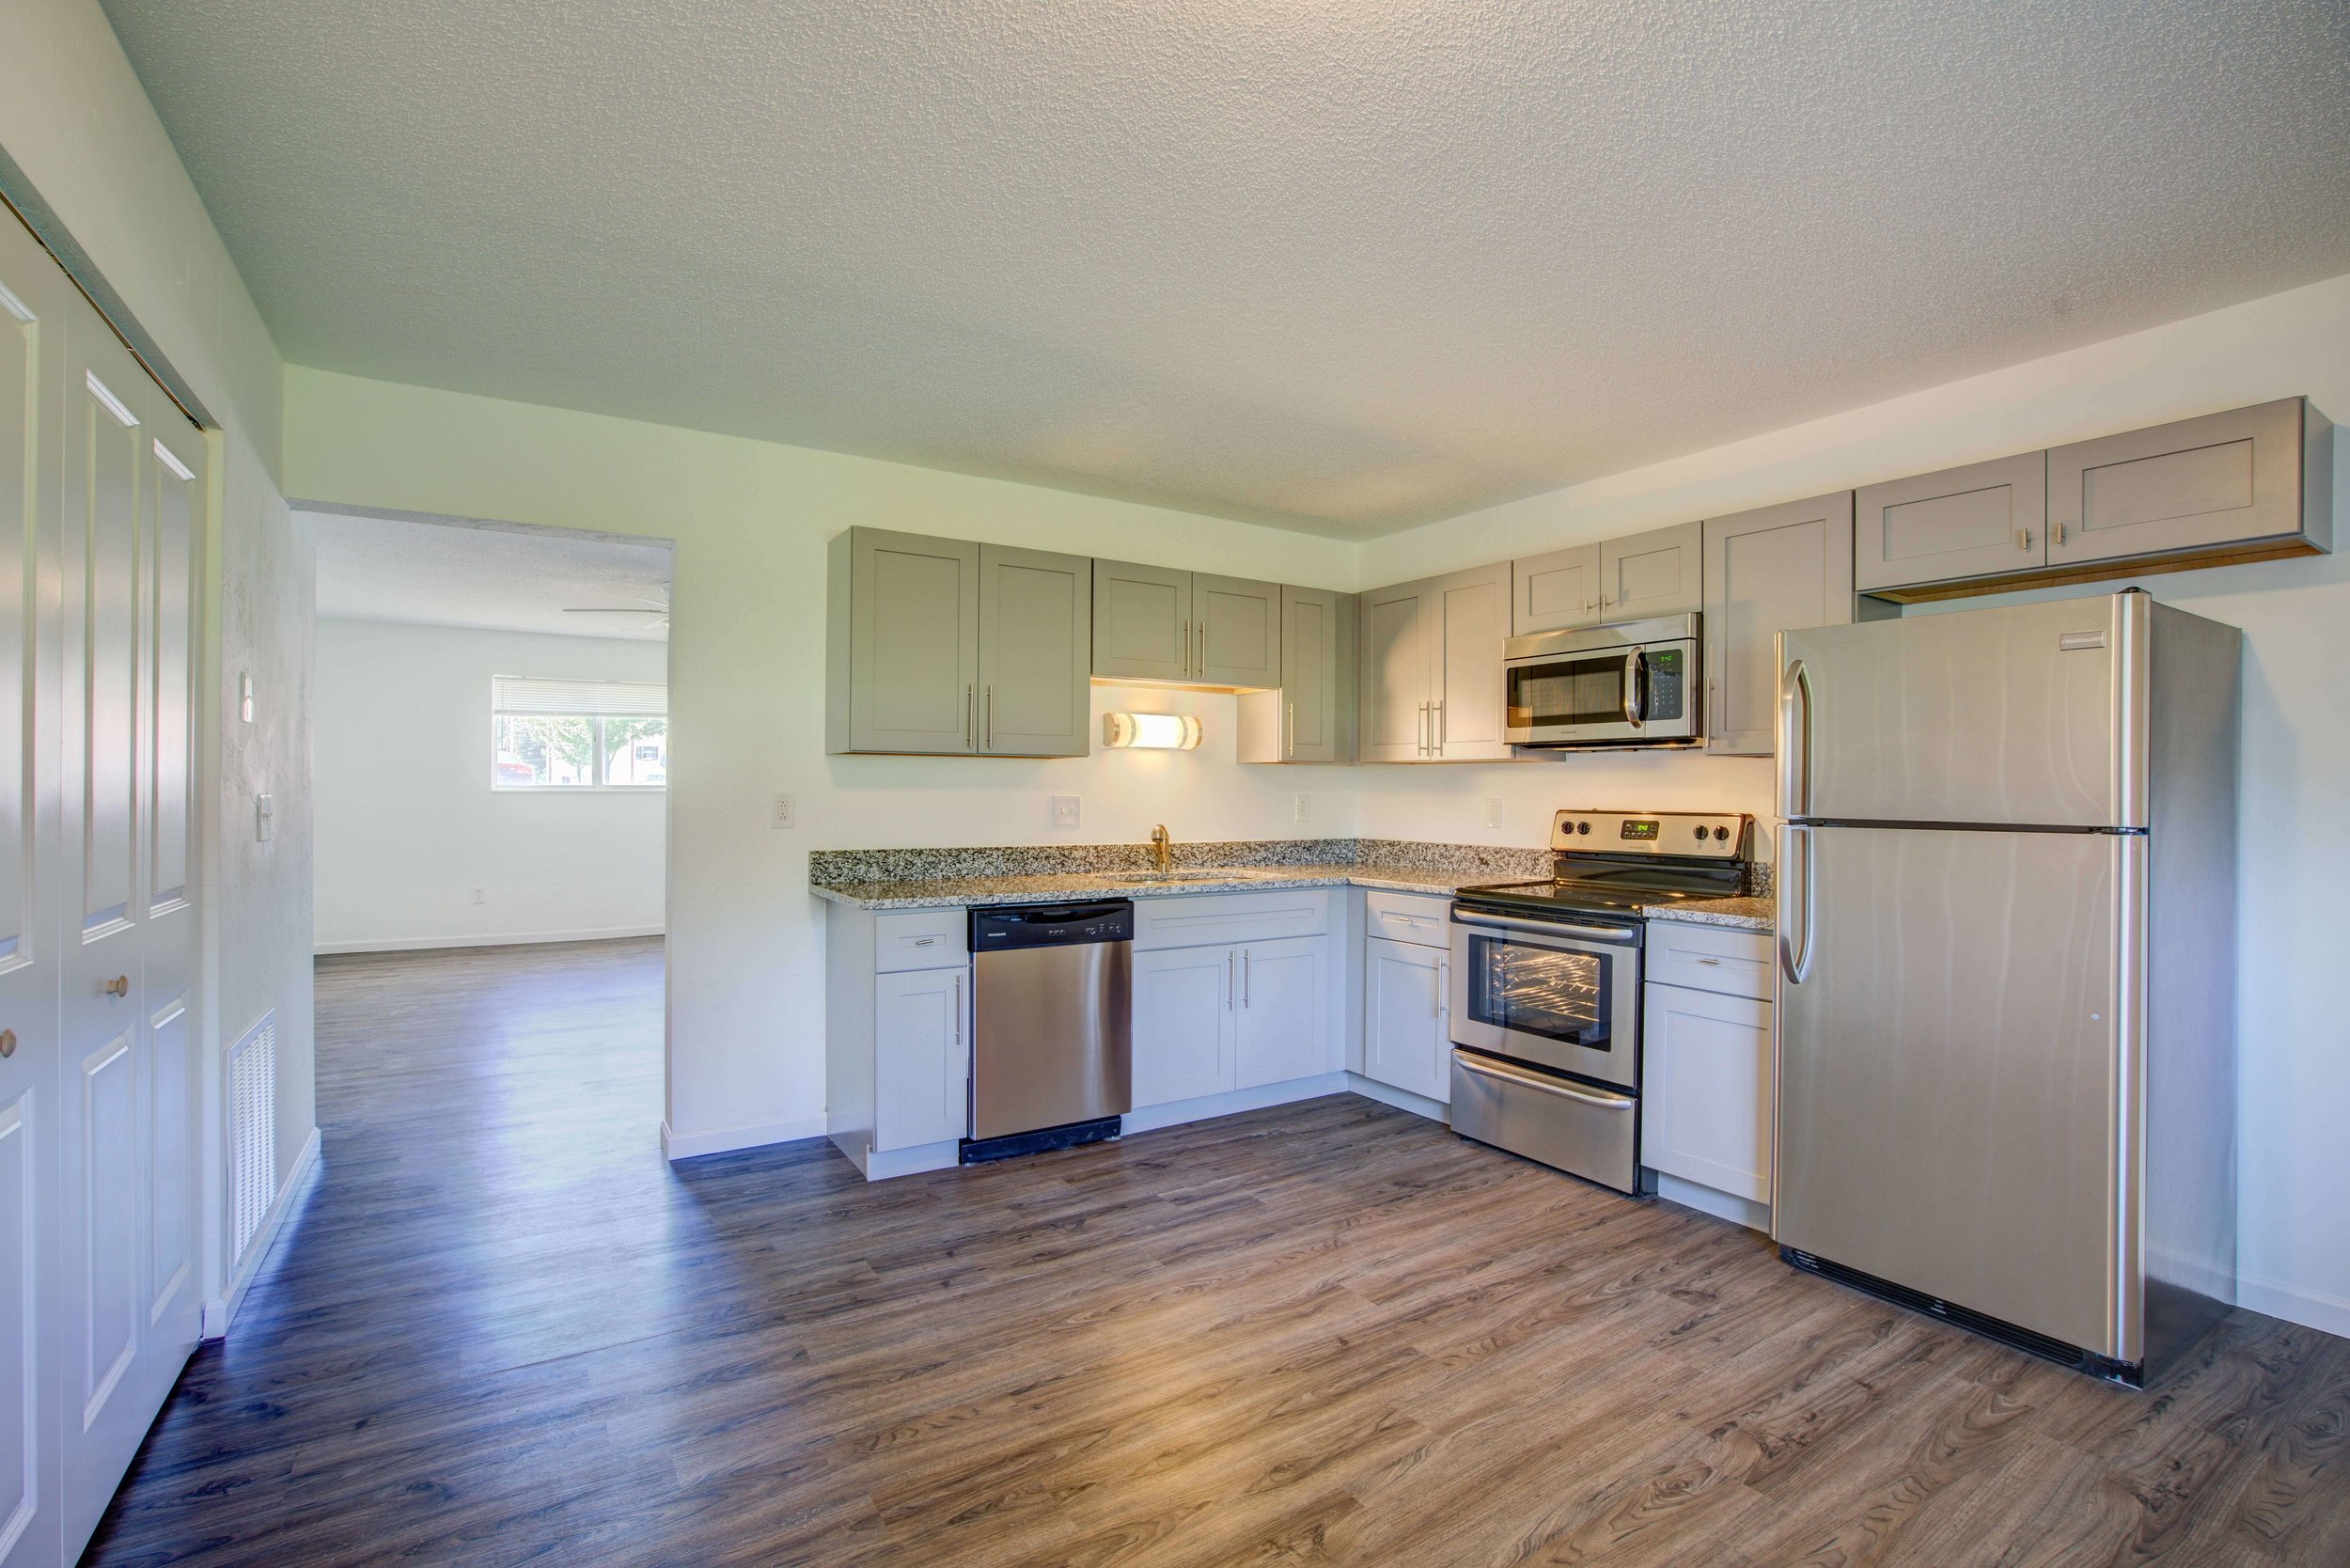 The Griffith - 2 Bed | 2 Bath | 1200 SF$915 Per MonthAvailable October 1st!